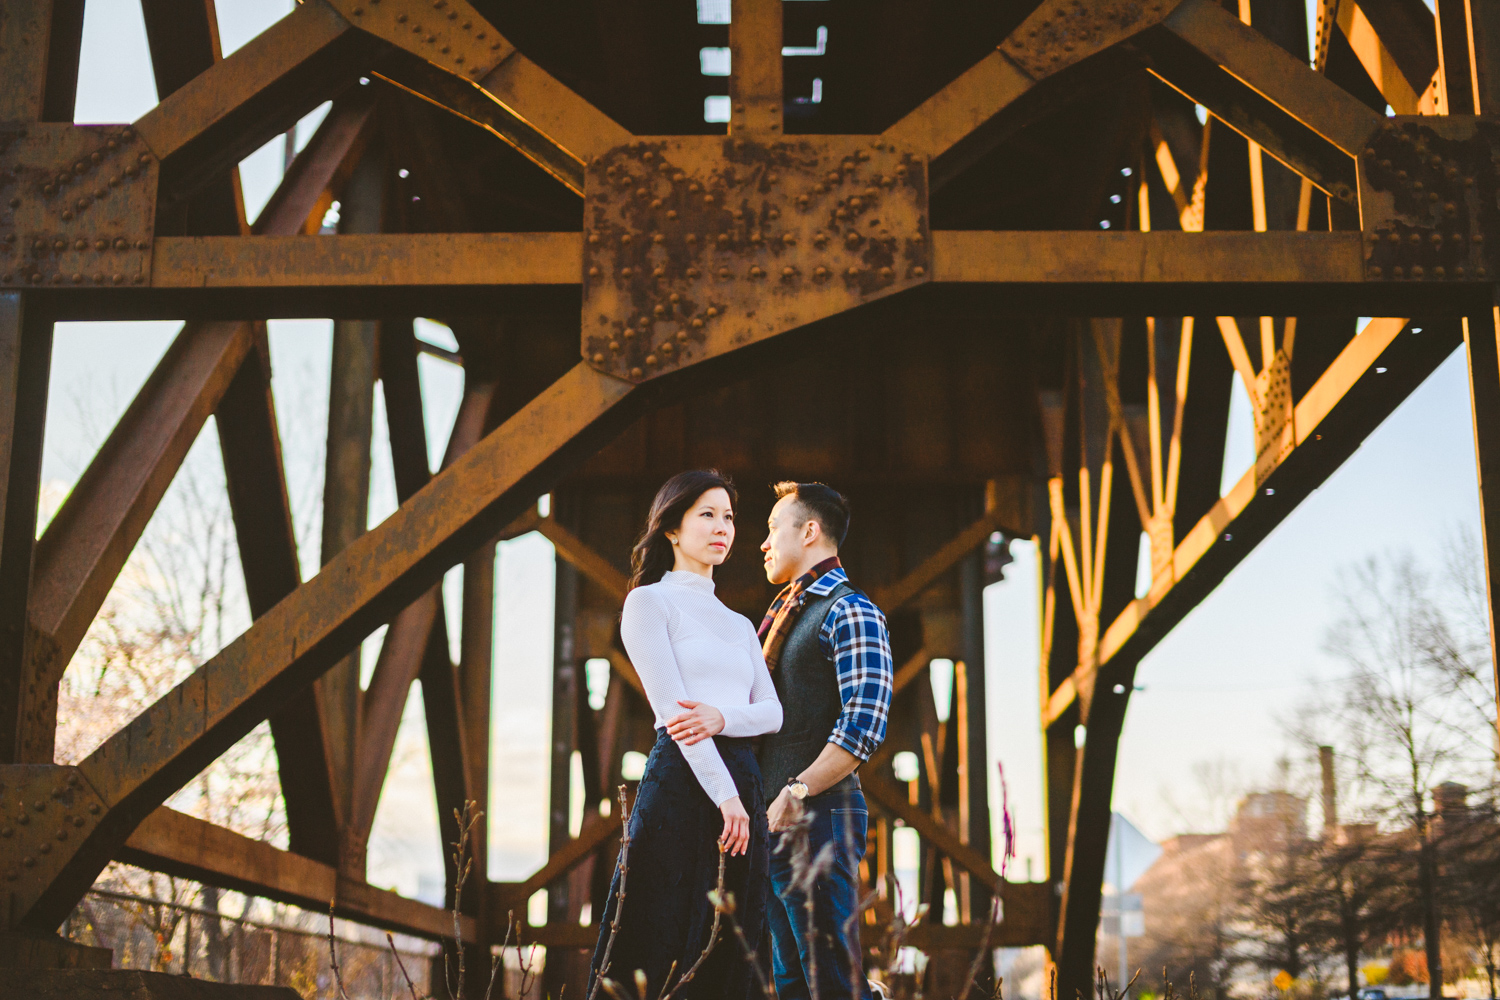 020 - couple standing under train bridge in richmond virginia wedding photographer.jpg